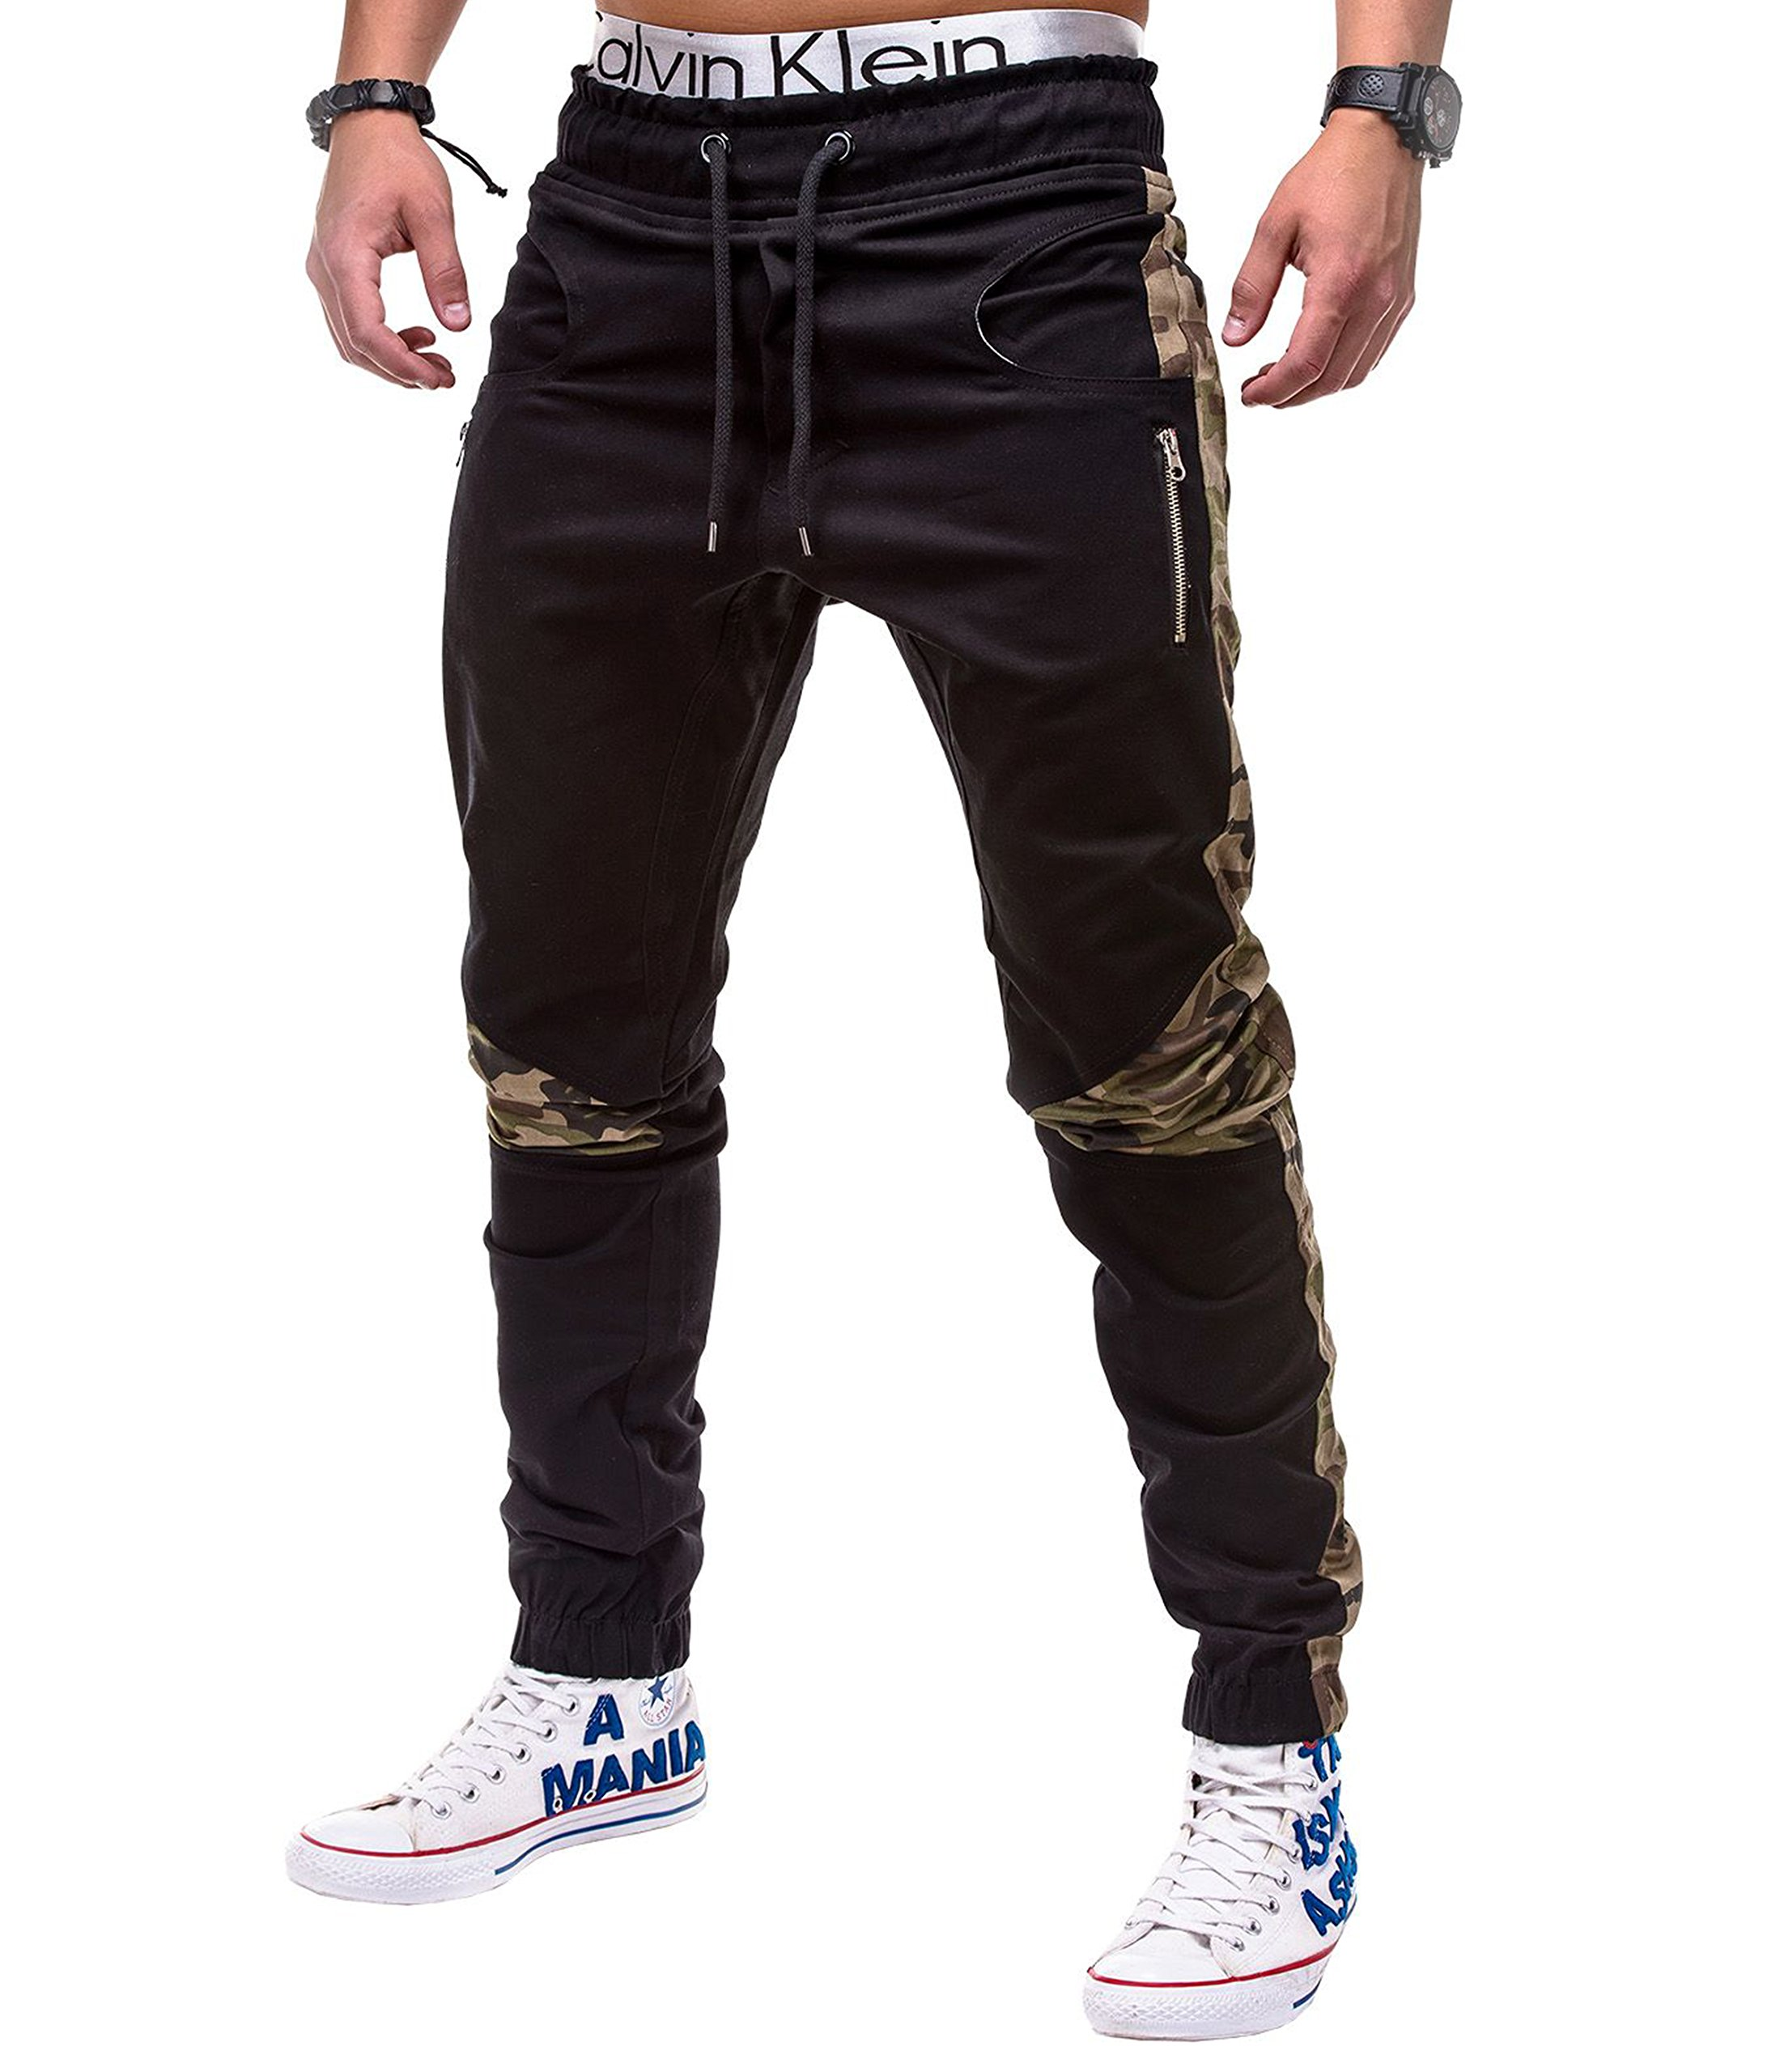 BetterStylz DixonBZ Men´s Chino Jogger Trousers Pants Camouflage Army DIV. Colors (S-3XL) (30-40) (Large, Black/Camoflage)